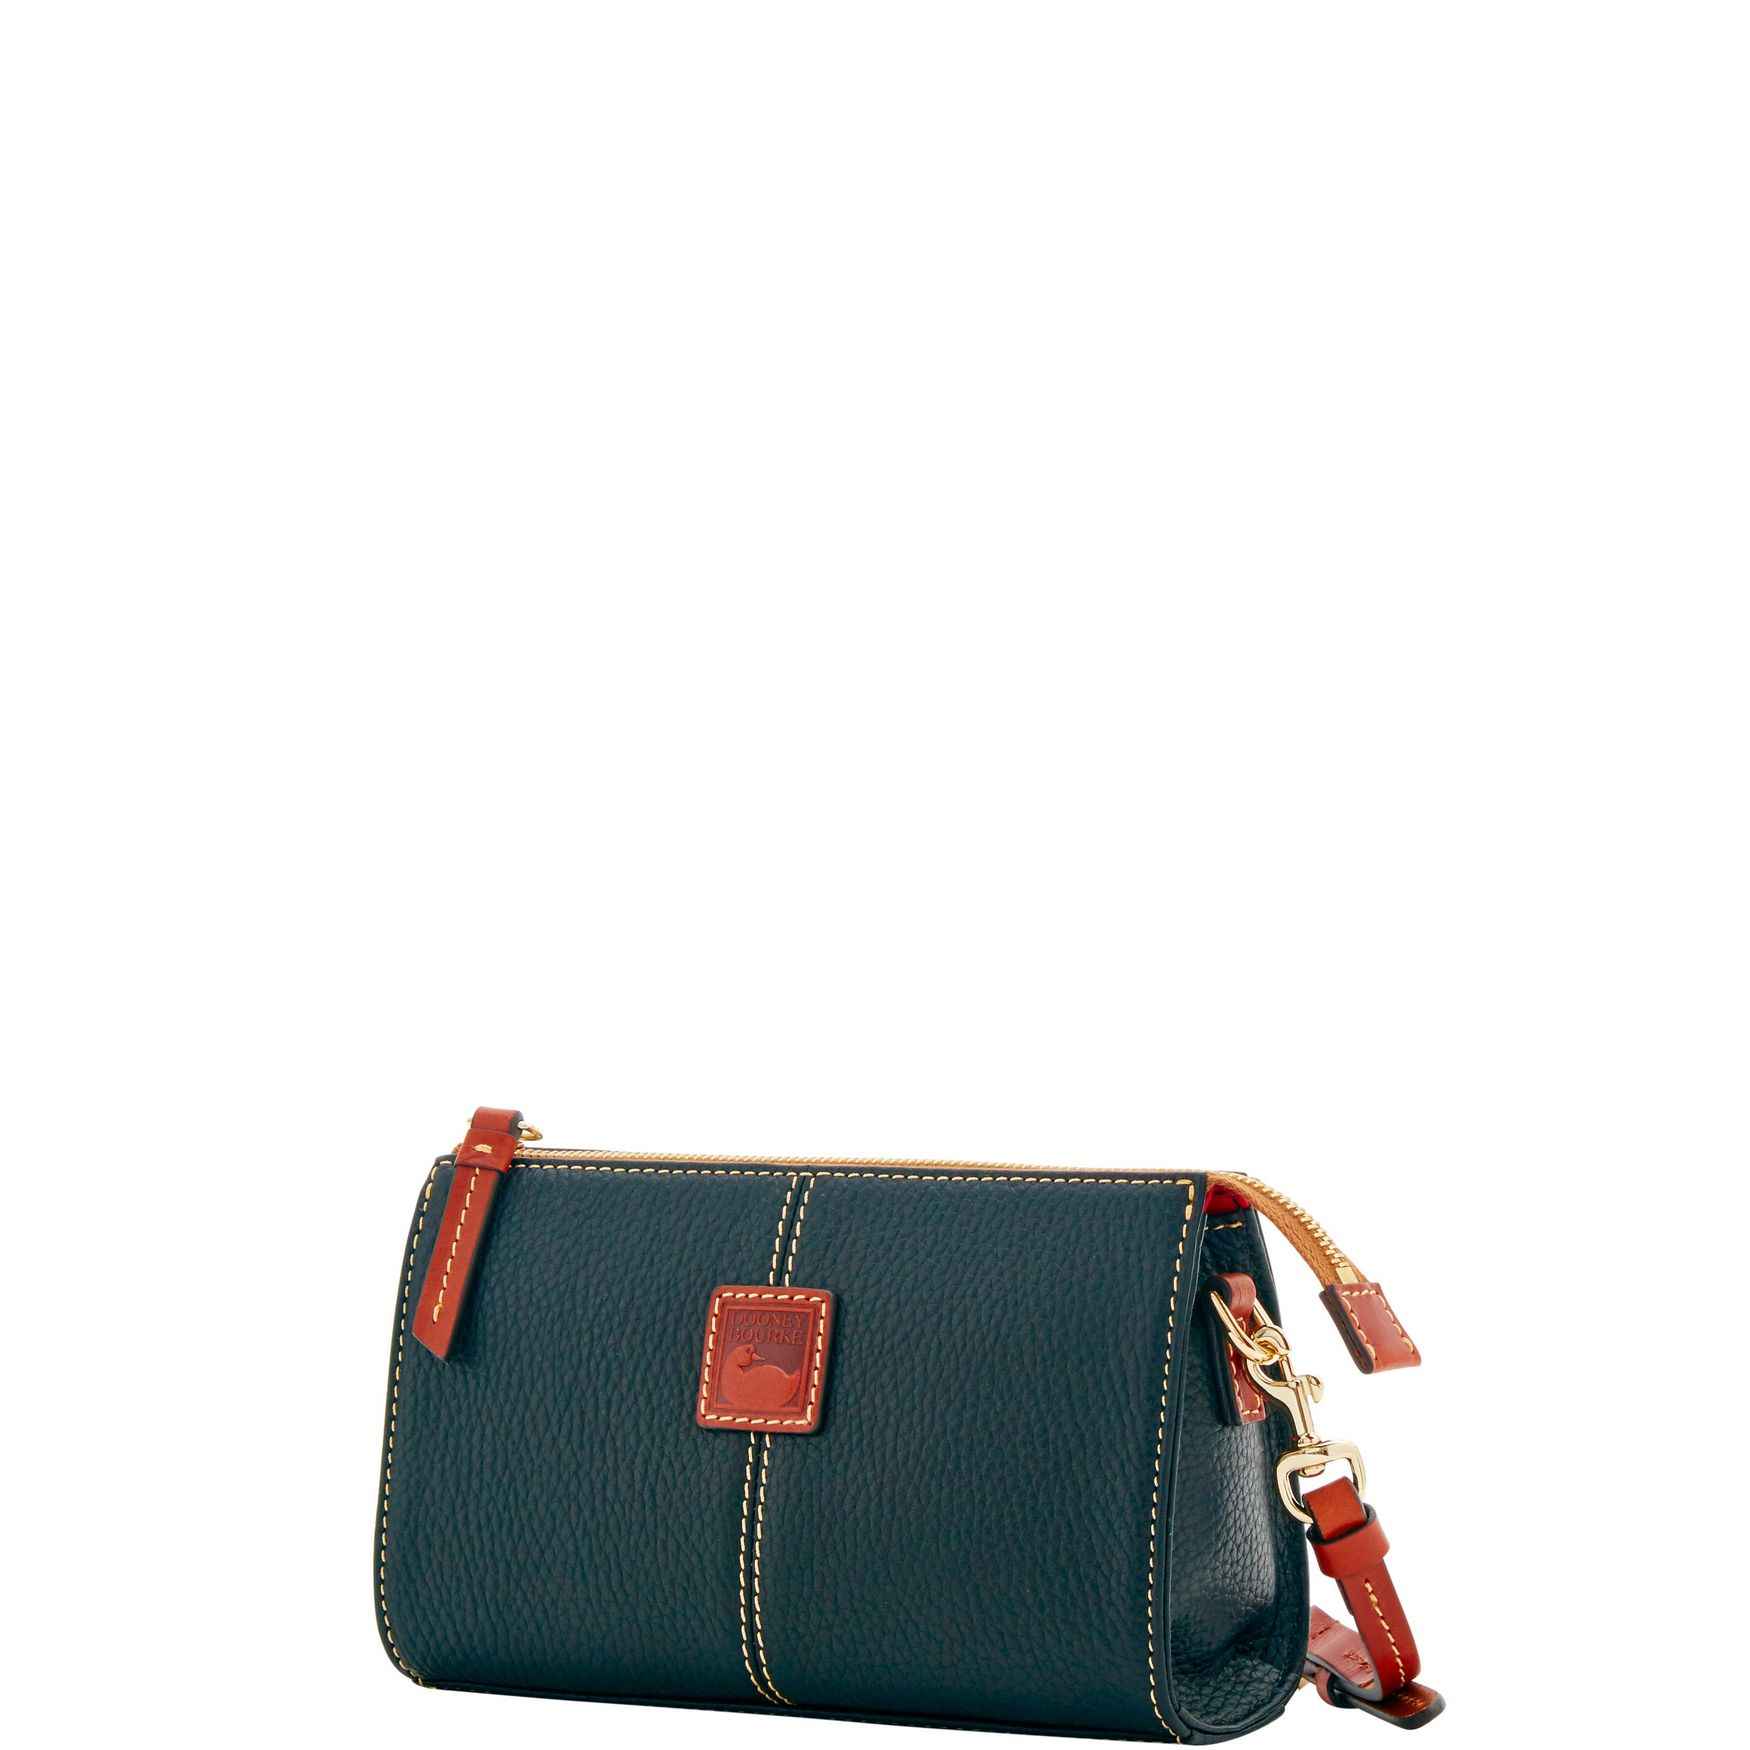 Dooney-amp-Bourke-Pebble-Grain-Small-Janine-Crossbody-Shoulder-Bag thumbnail 4